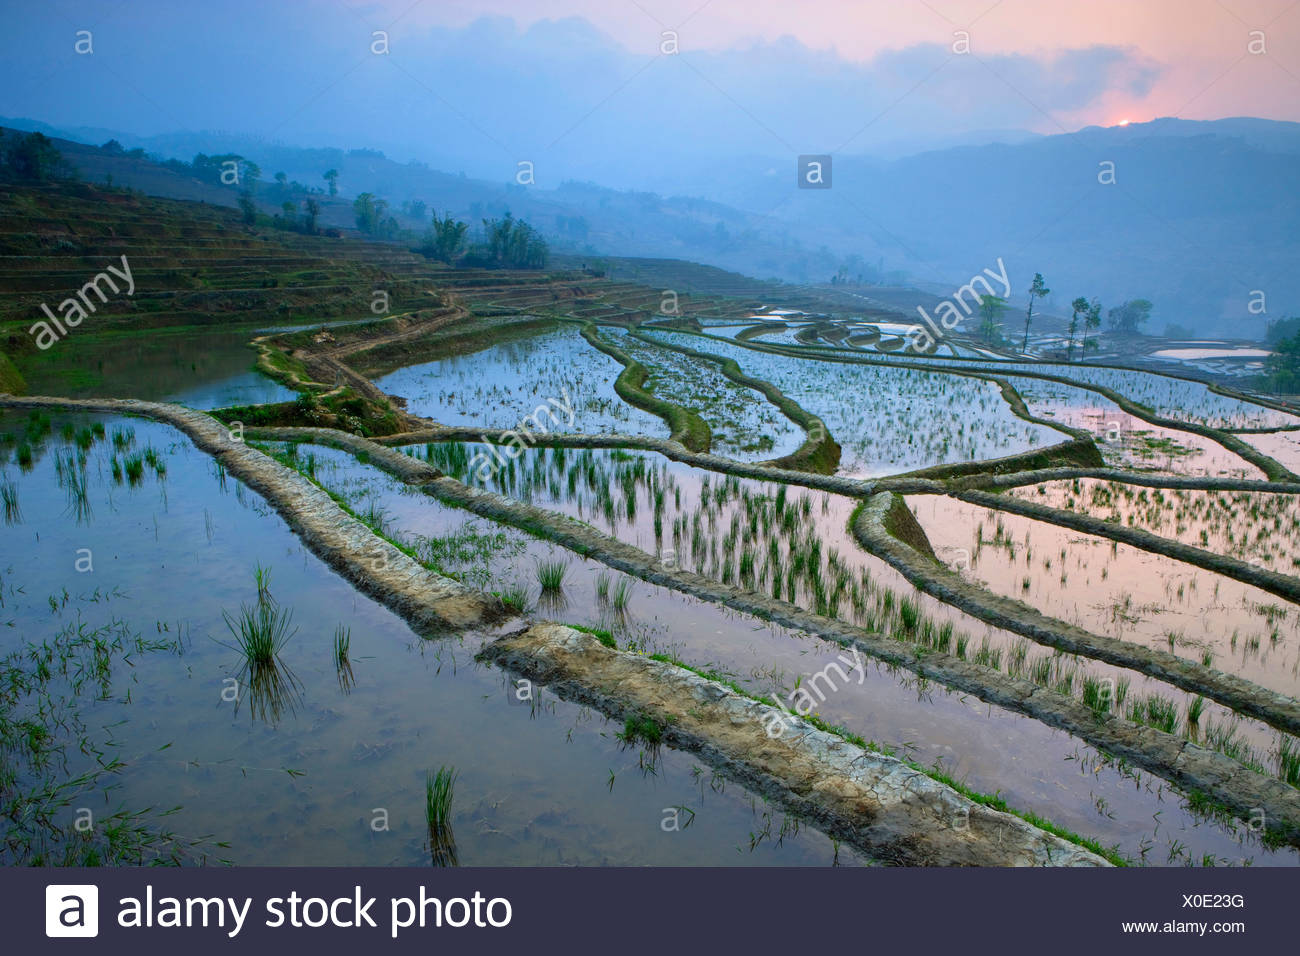 Yuanyang, China, Asia, rice terraces, growing of rice, rice fields, agriculture, water, morning light, sunrise, fog, spring Stock Photo